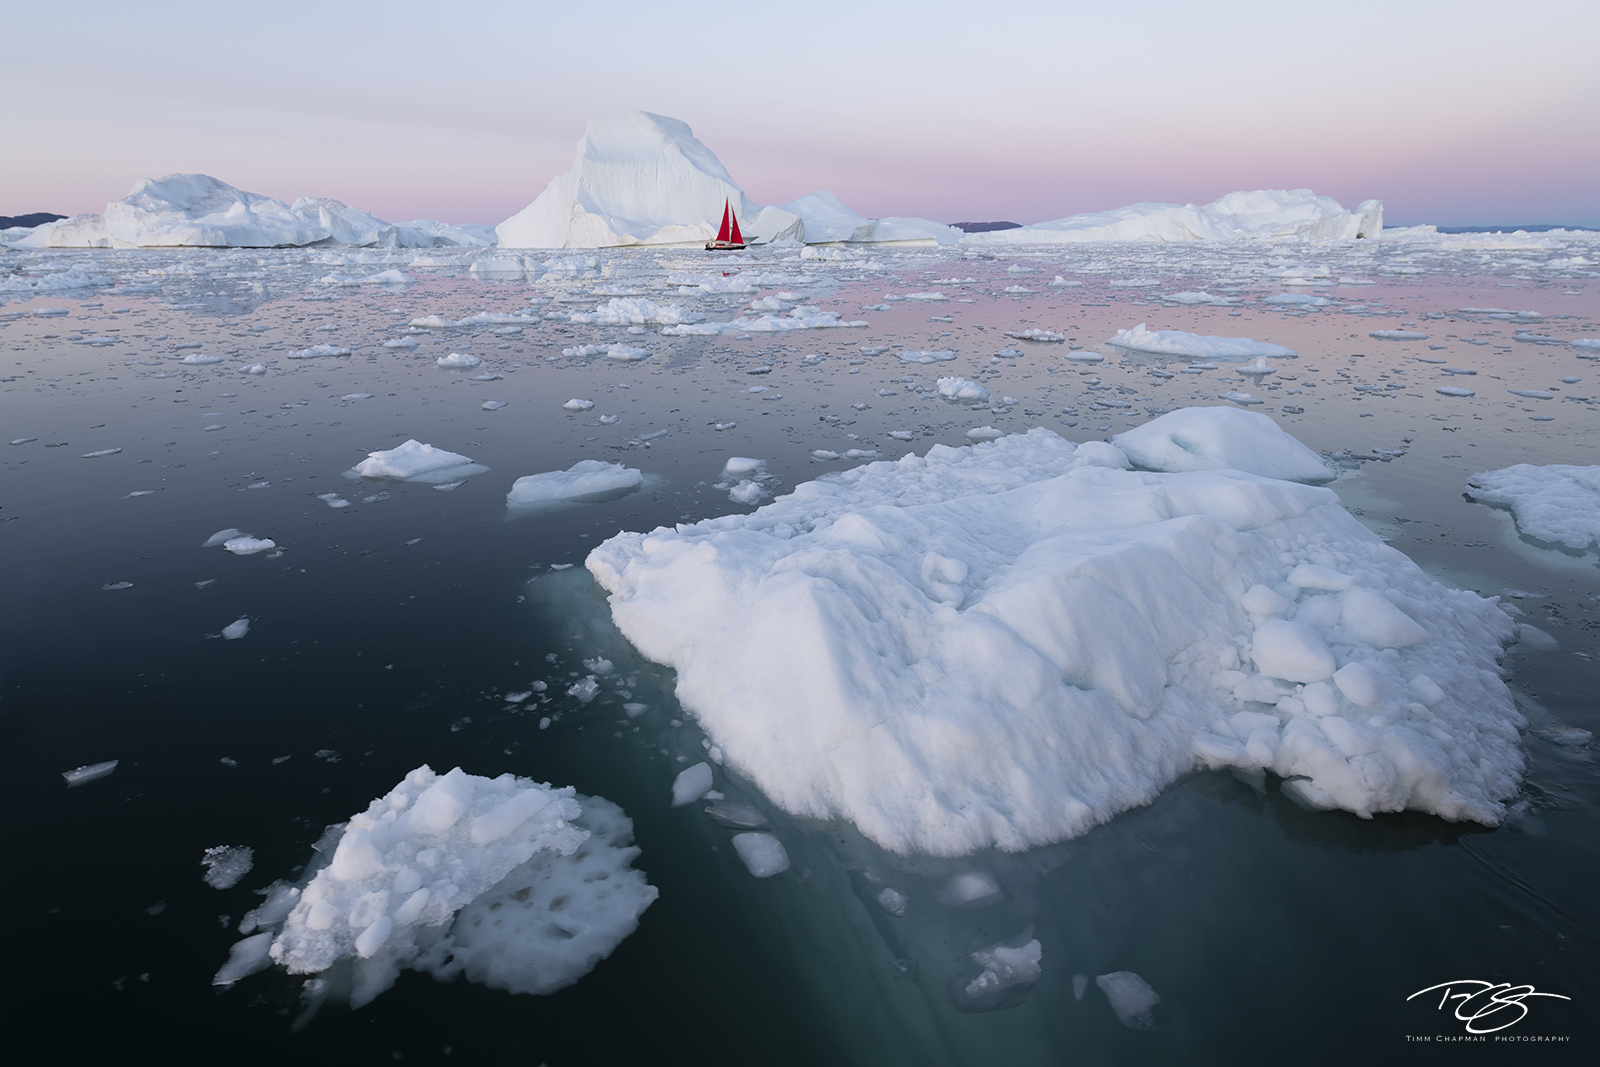 A sailboat navigates through the melting masses of ice being calved from the Jakobshavn glacier in West Greenland